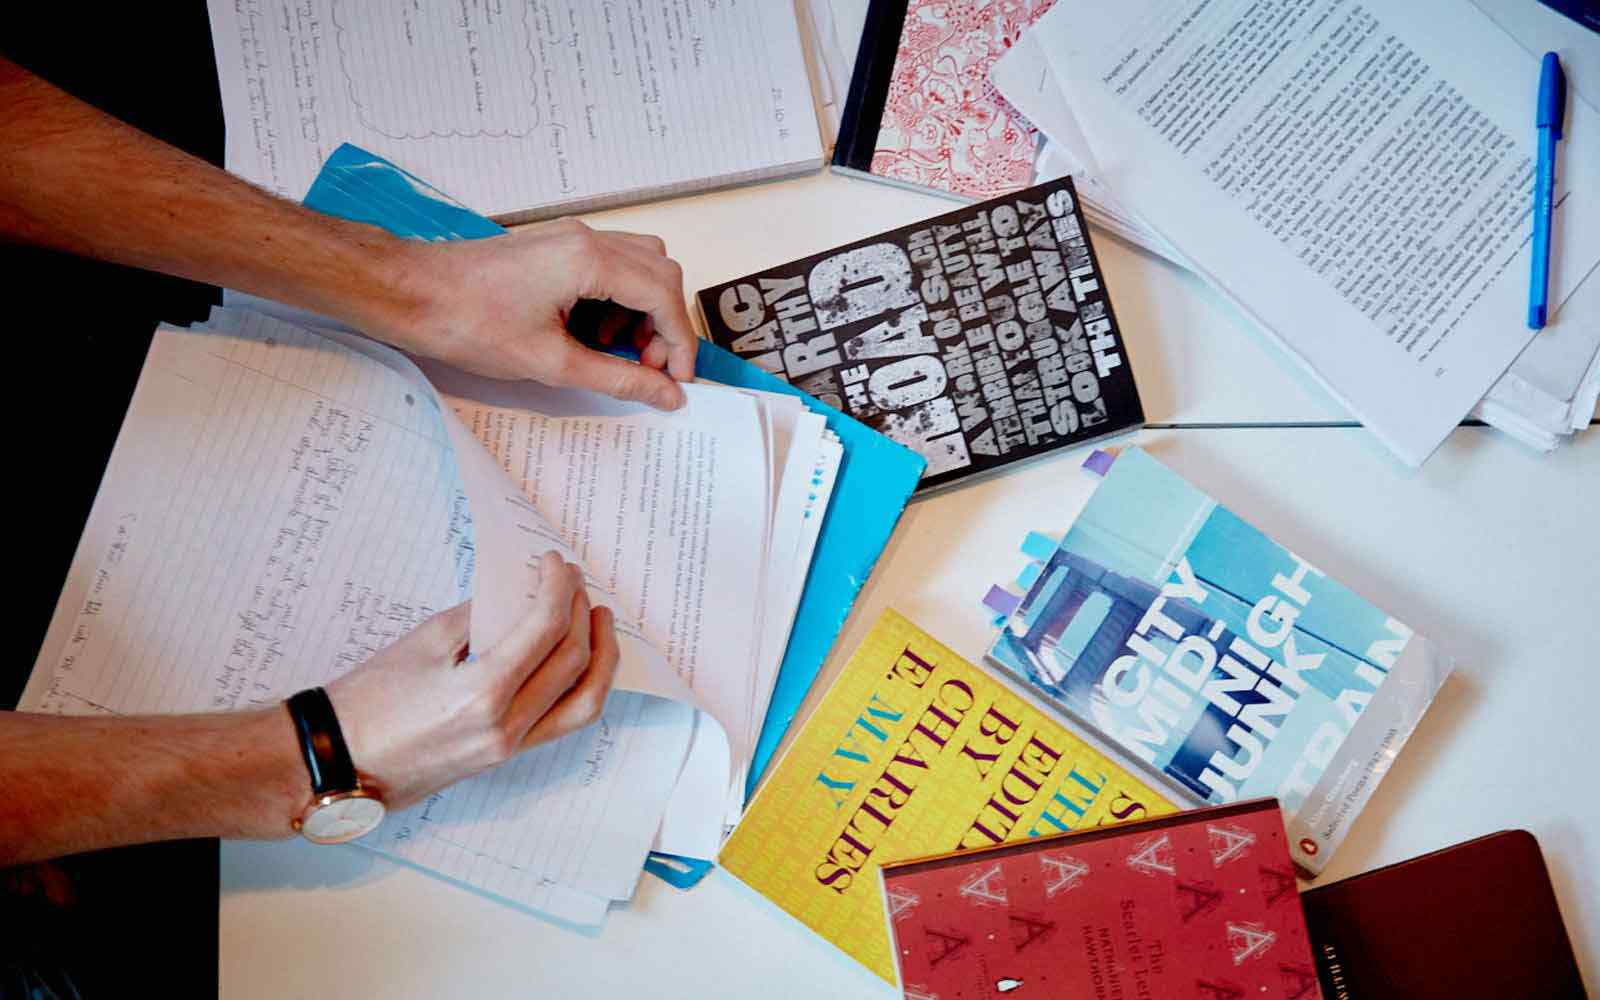 Table of study materials with hands picking up paper